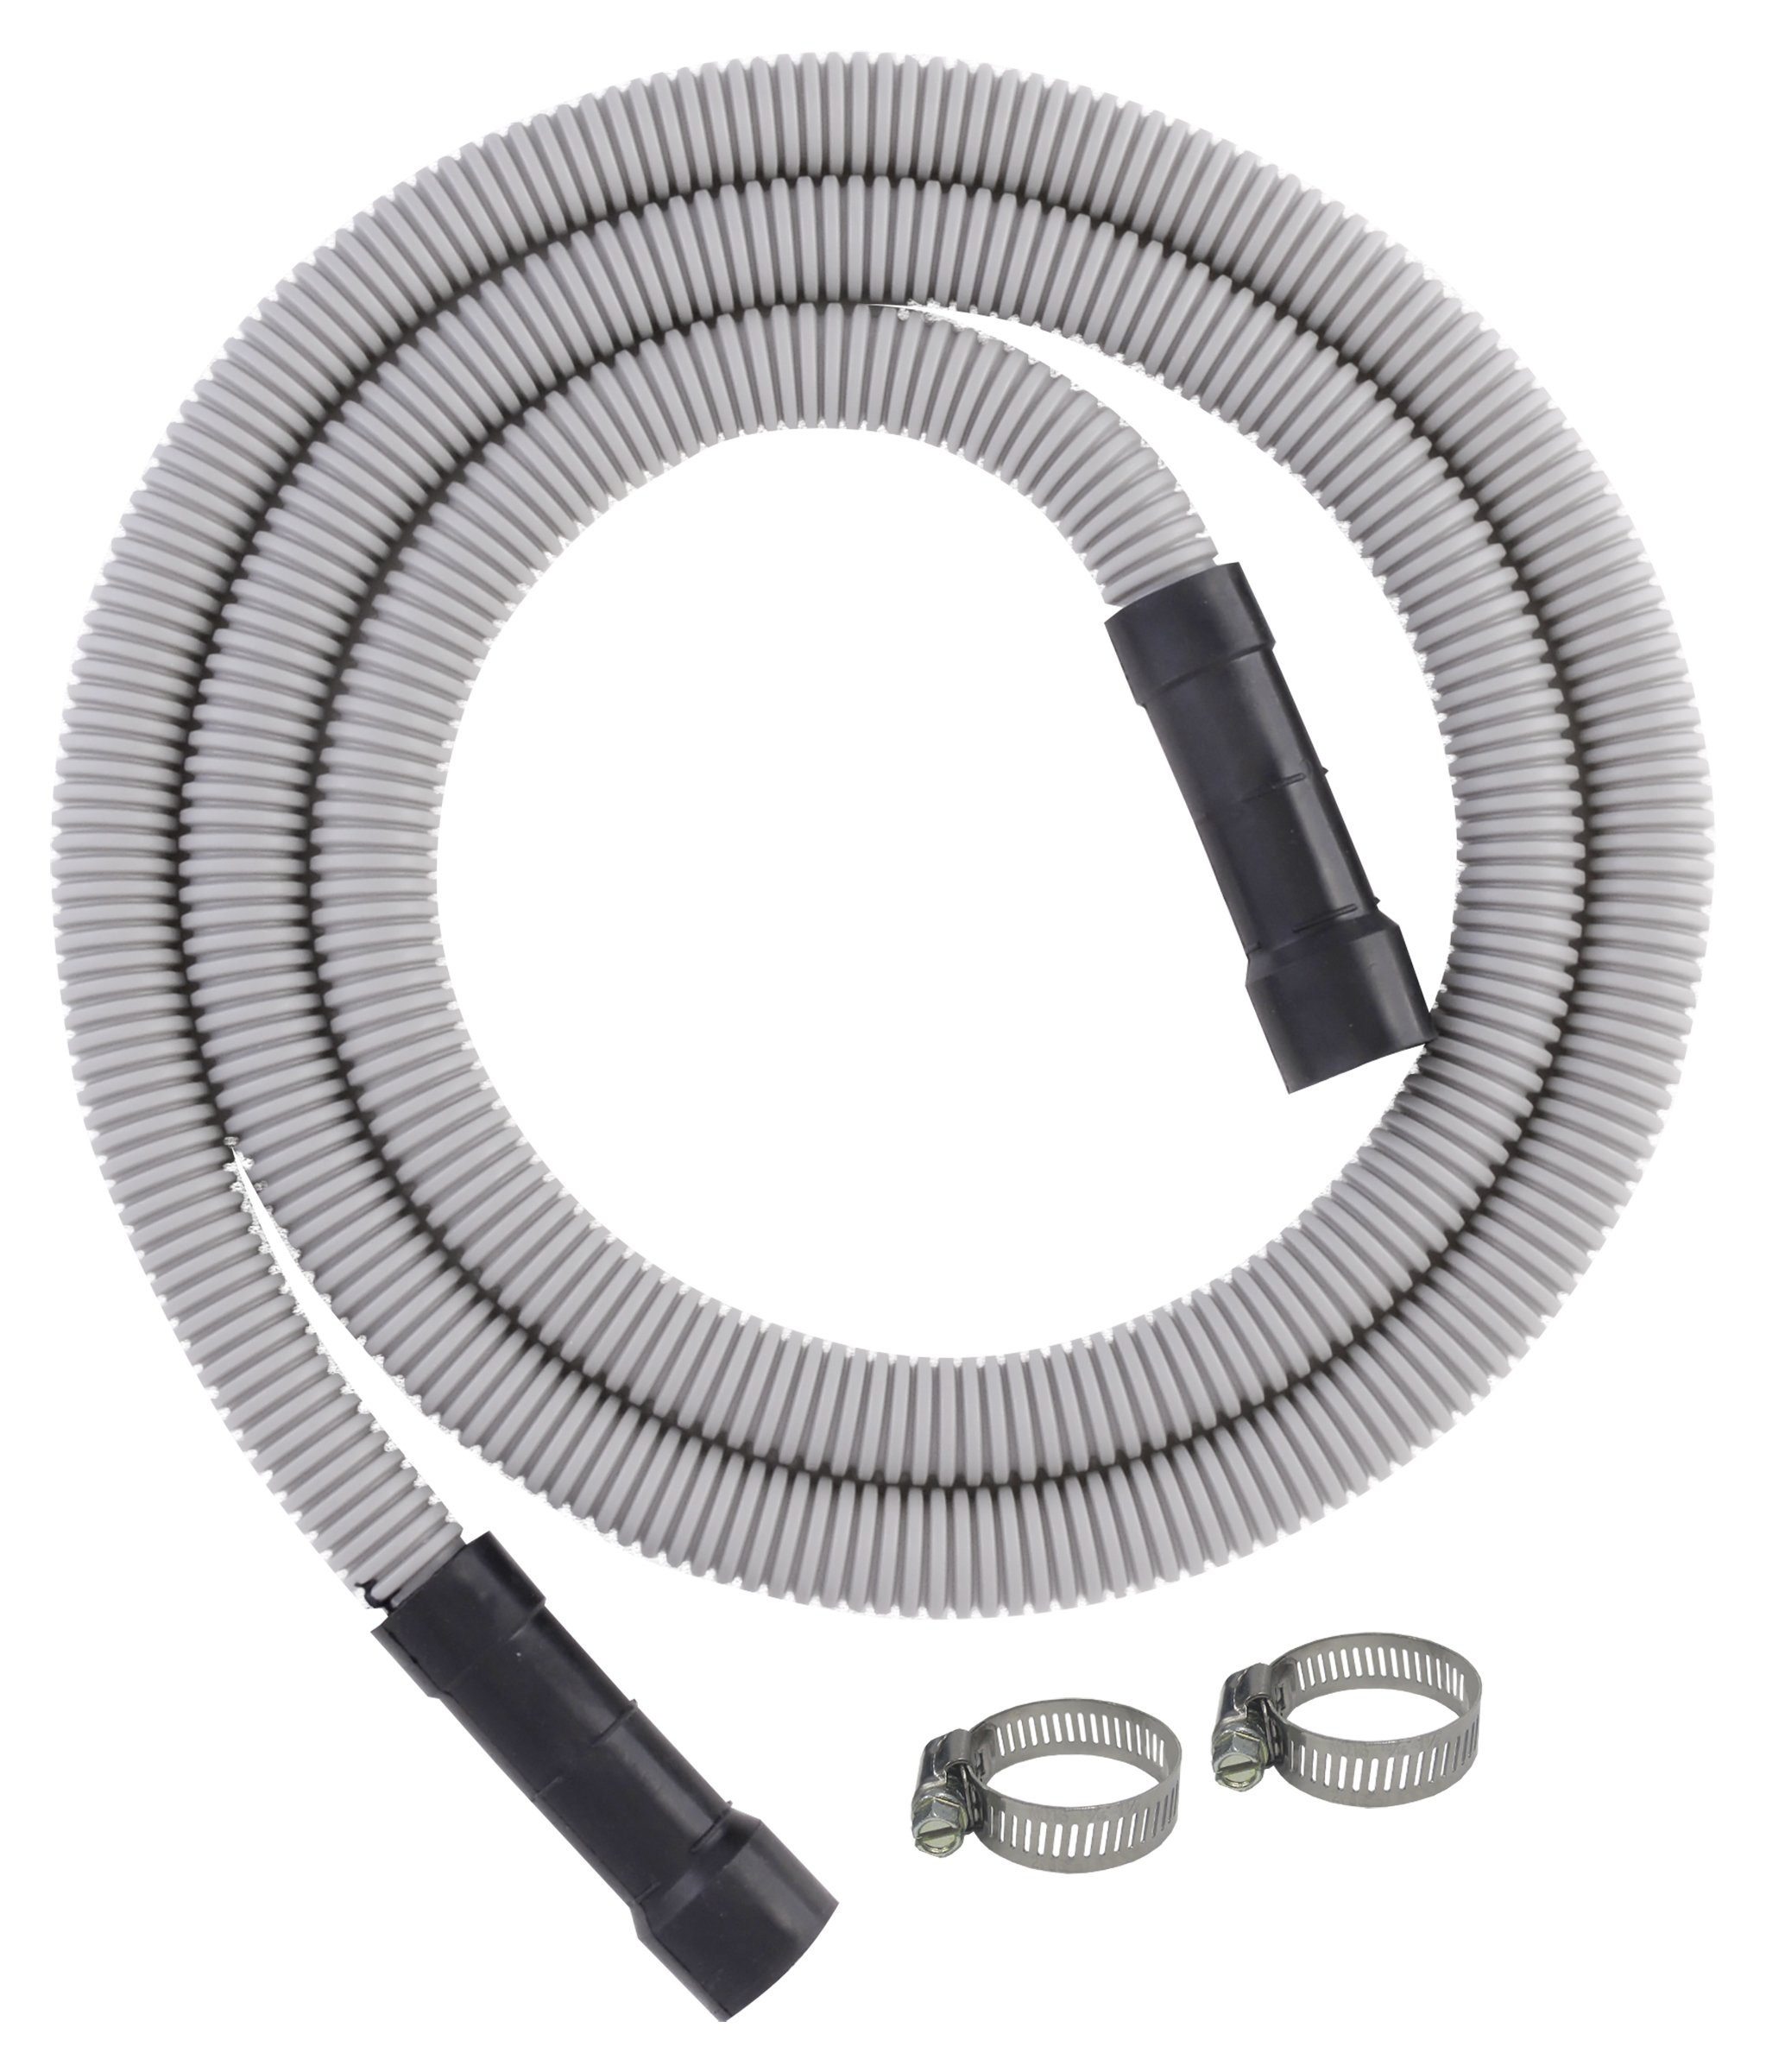 Cheap Discharge Hose 3 Inch, find Discharge Hose 3 Inch deals on ...